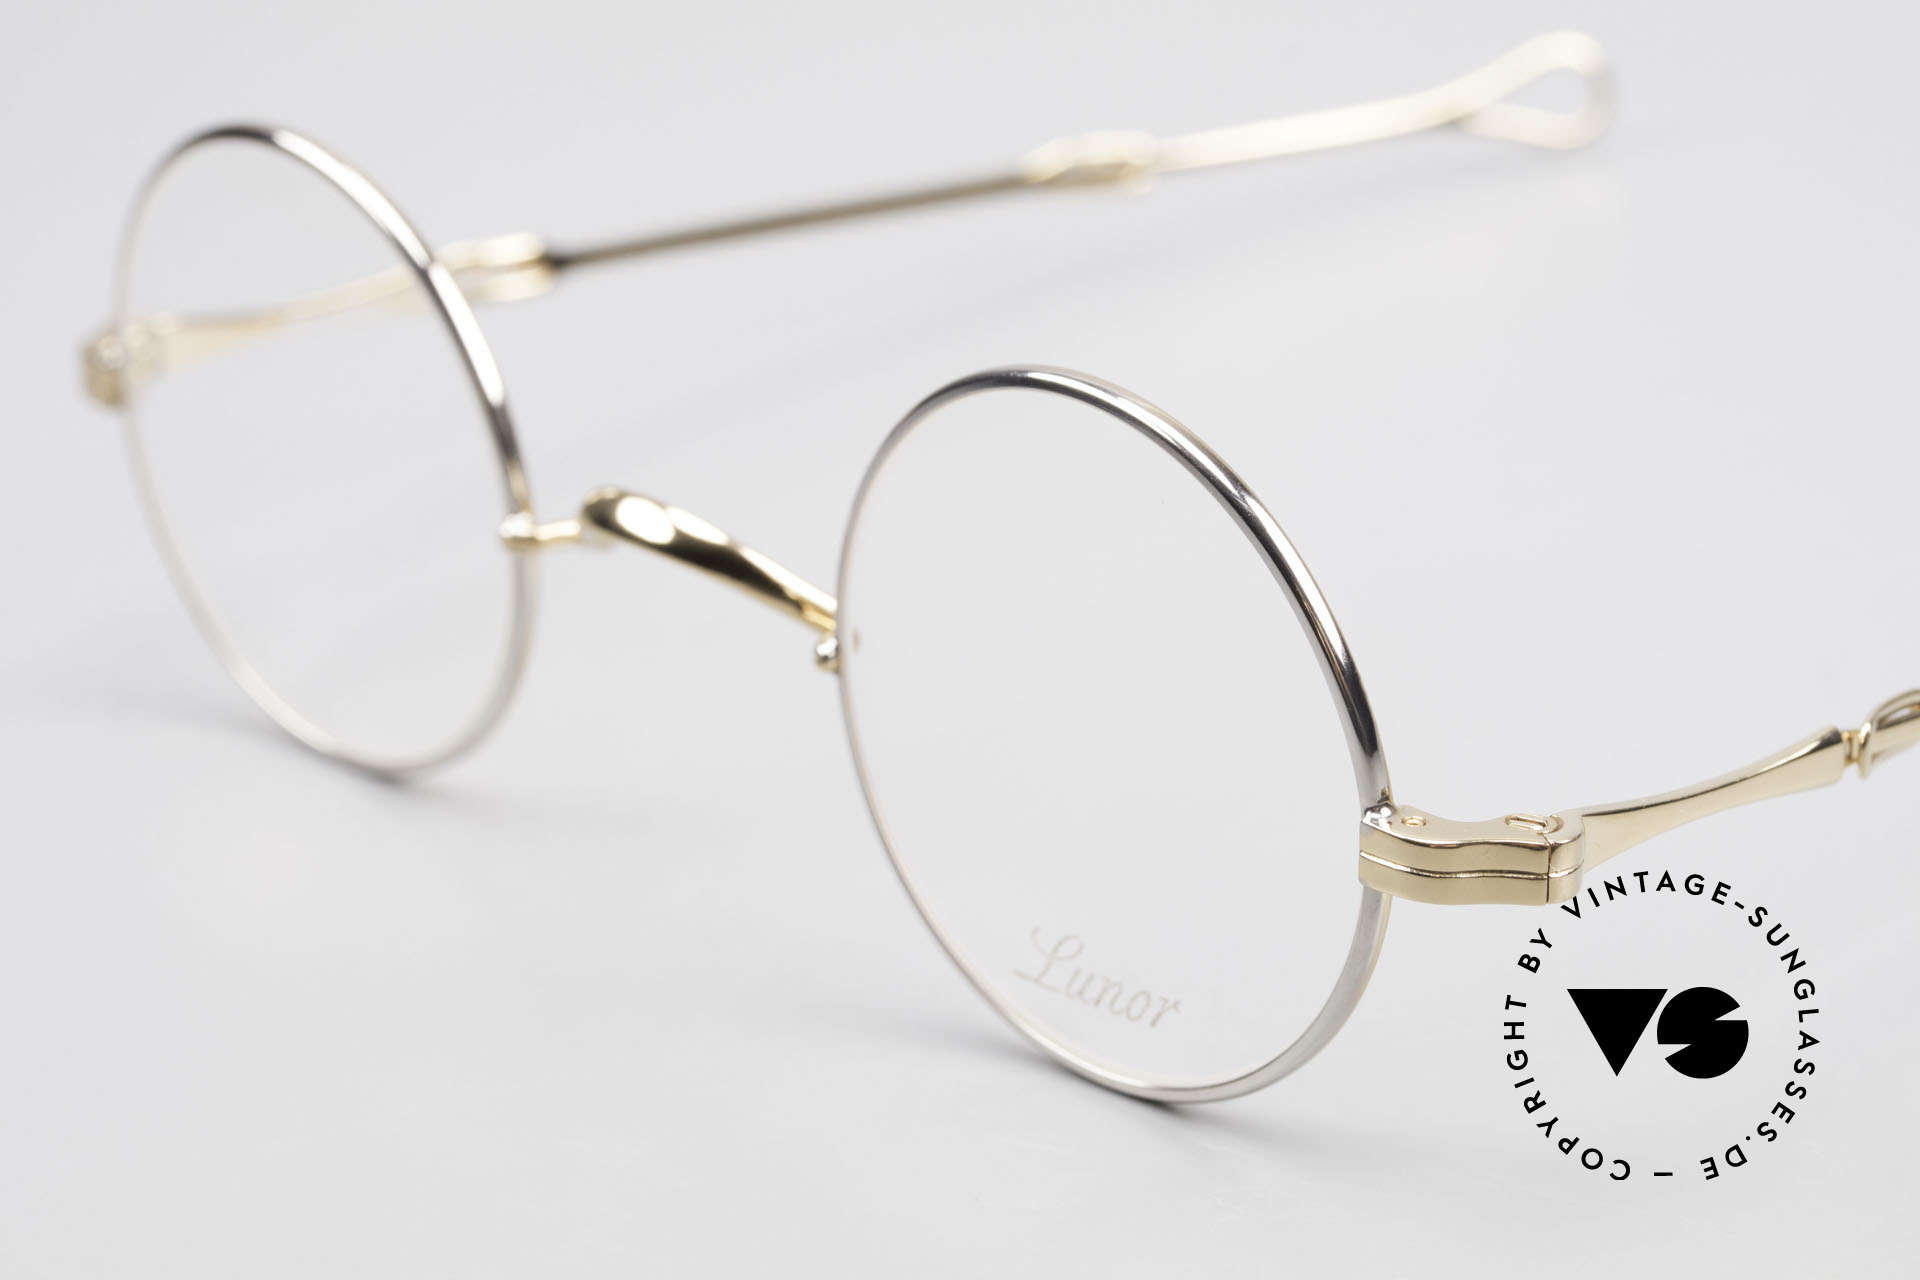 Lunor I 12 Telescopic Slide Temples Telescopic Specs, as well as for the brilliant telescopic / extendable arms, Made for Men and Women